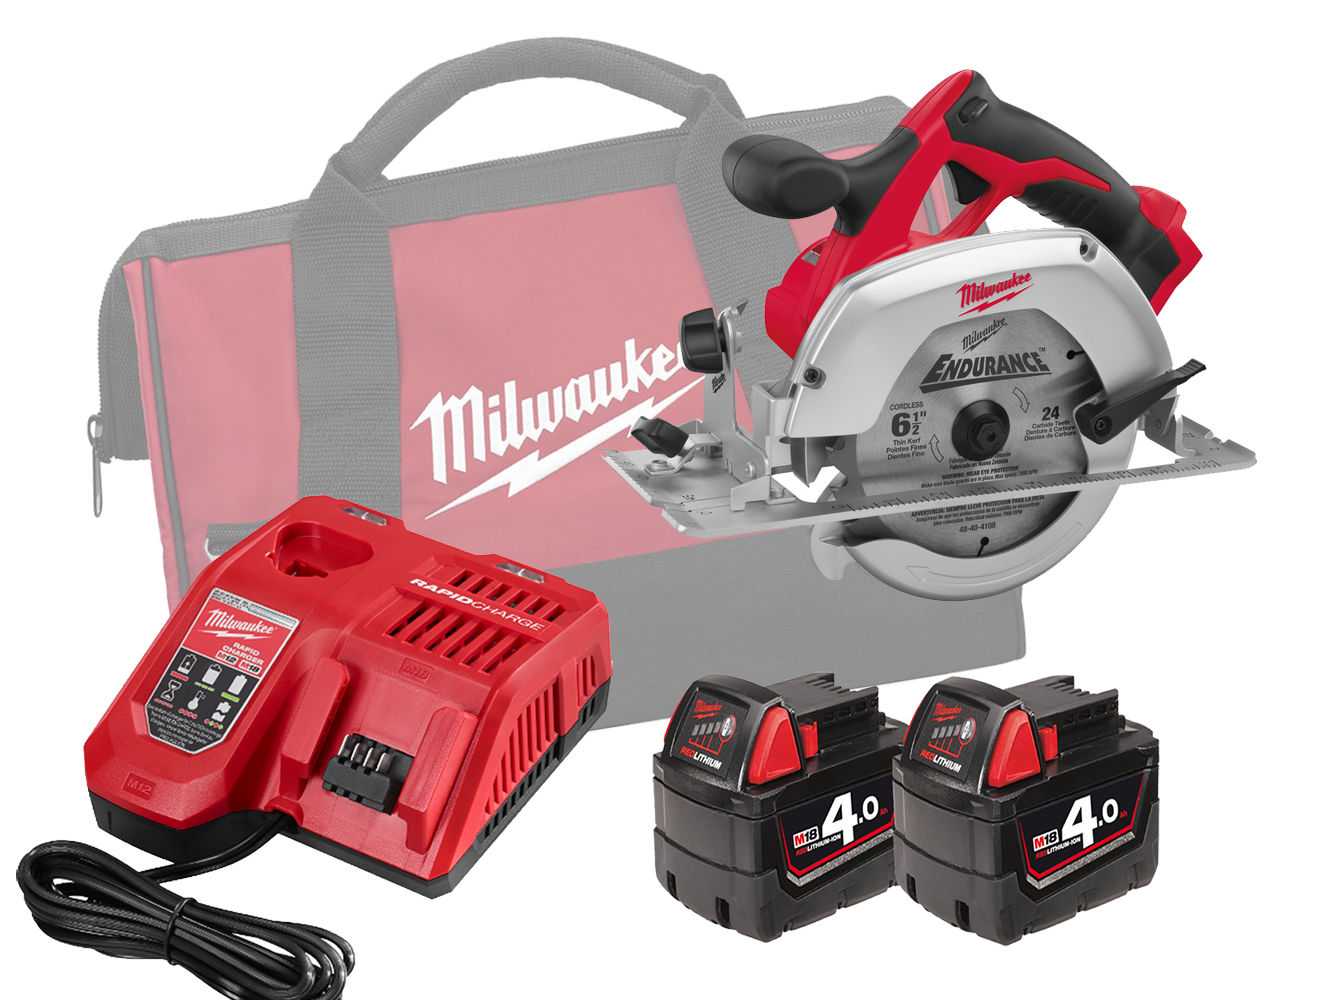 MILWAUKEE 18V HEAVY DUTY CIRCULAR SAW - HD18CS - 4.0AH PACK